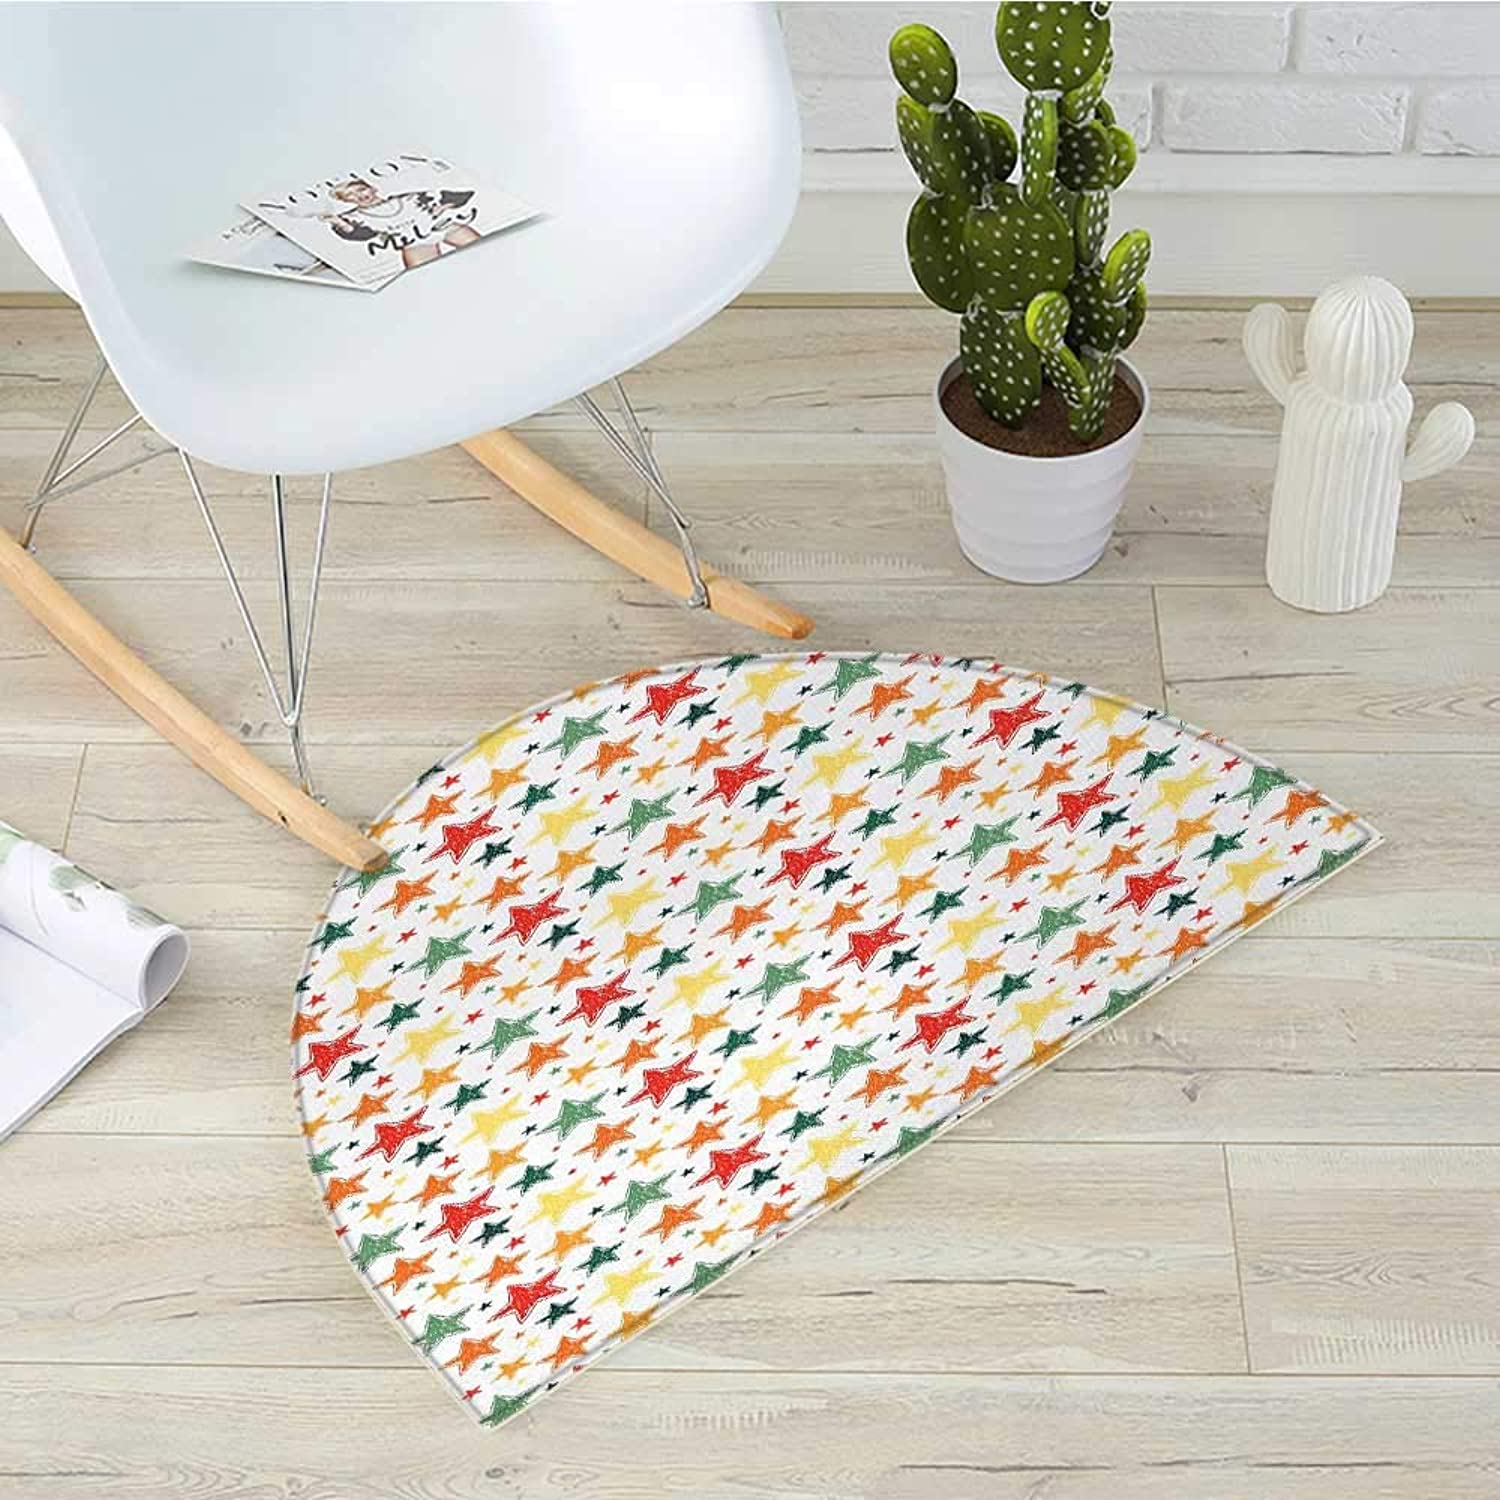 Star Semicircular CushionCheckered Grid Style Background with Hand Drawn colorful Five Pointed Star Doodles Entry Door Mat H 39.3  xD 59  Multicolor